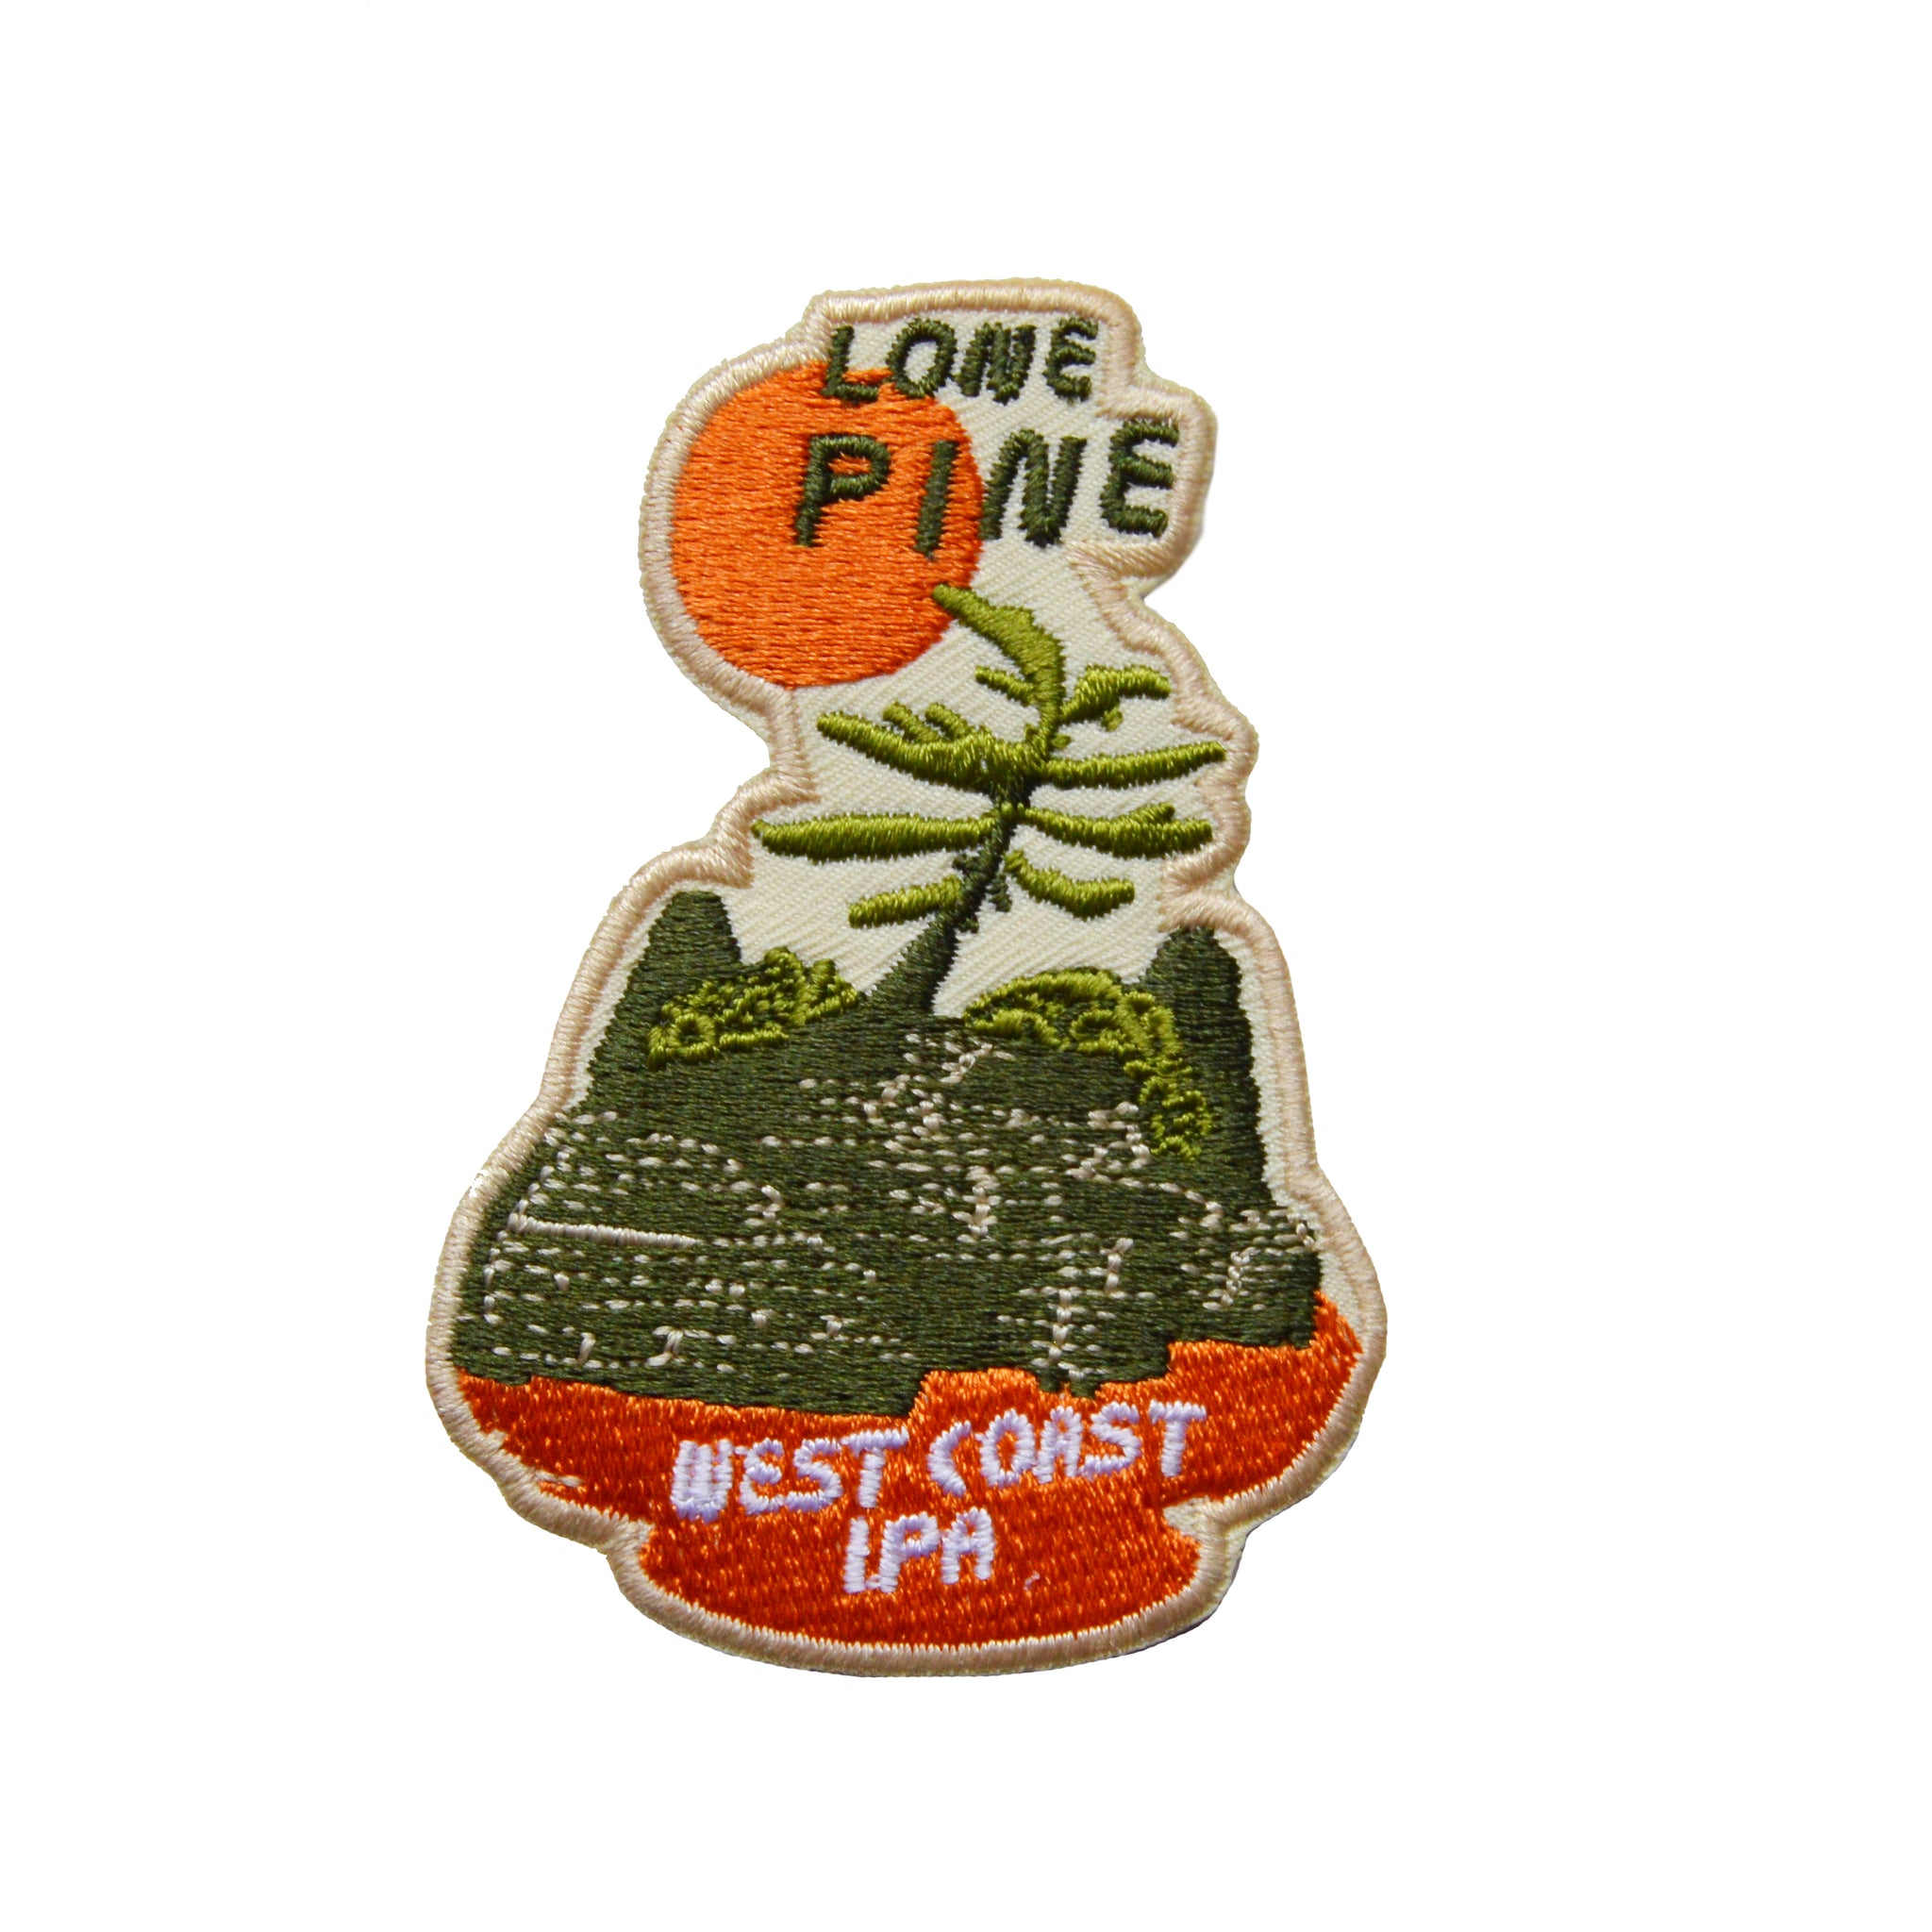 Patch - Lone Pine